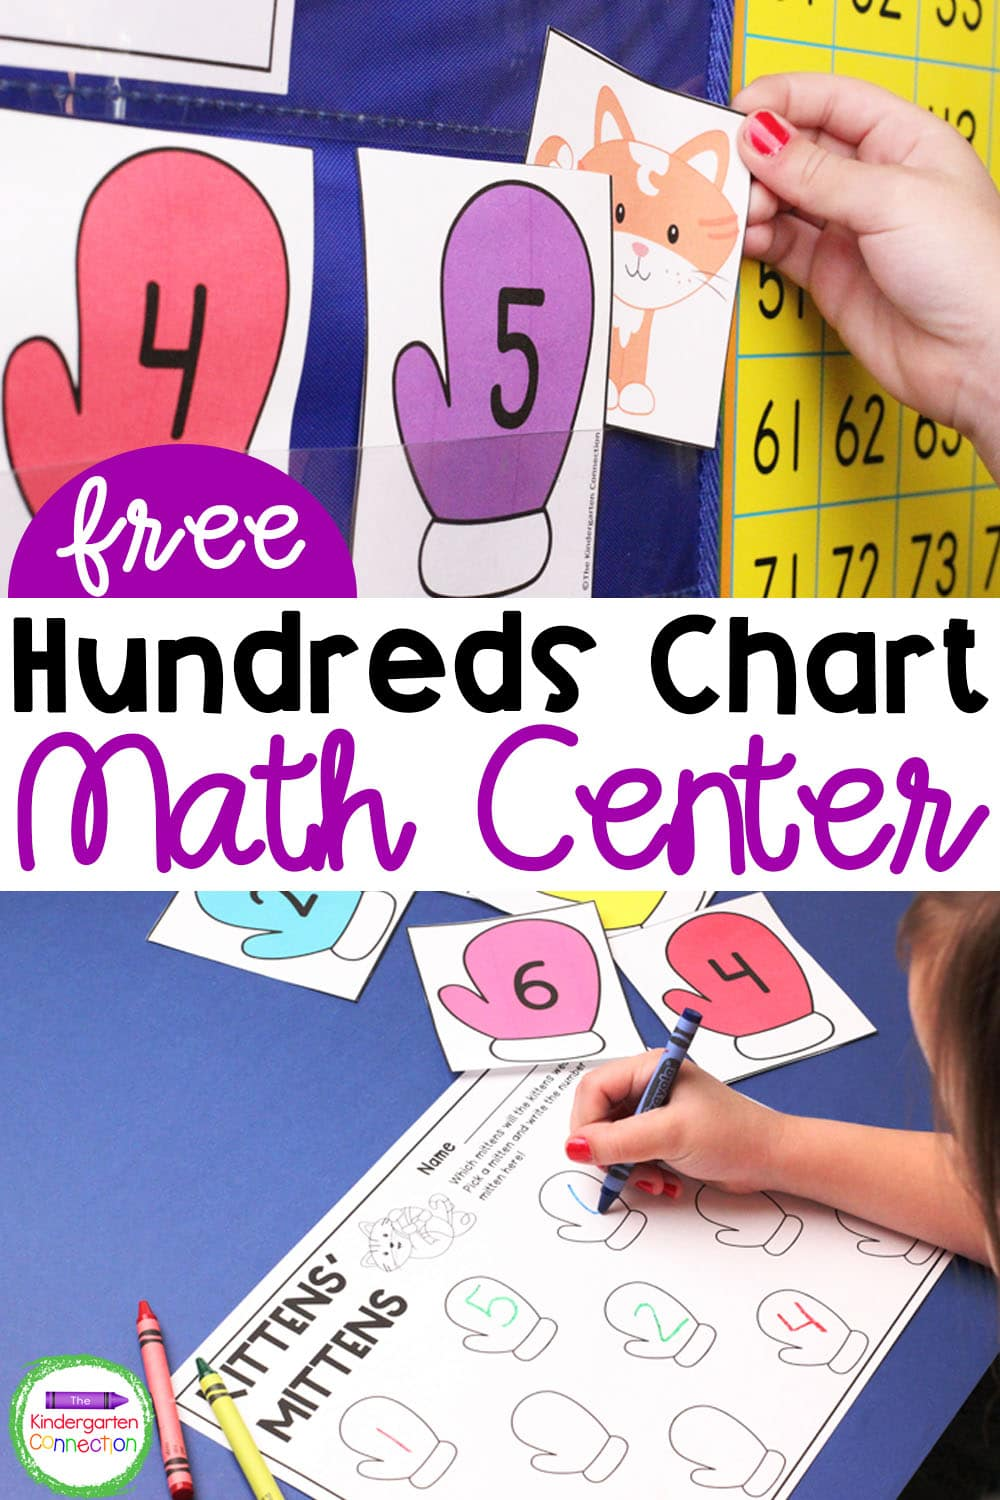 This FREE Hundreds Chart Activity is the perfect way to practice number recognition and skip counting in Pre-K and Kindergarten.